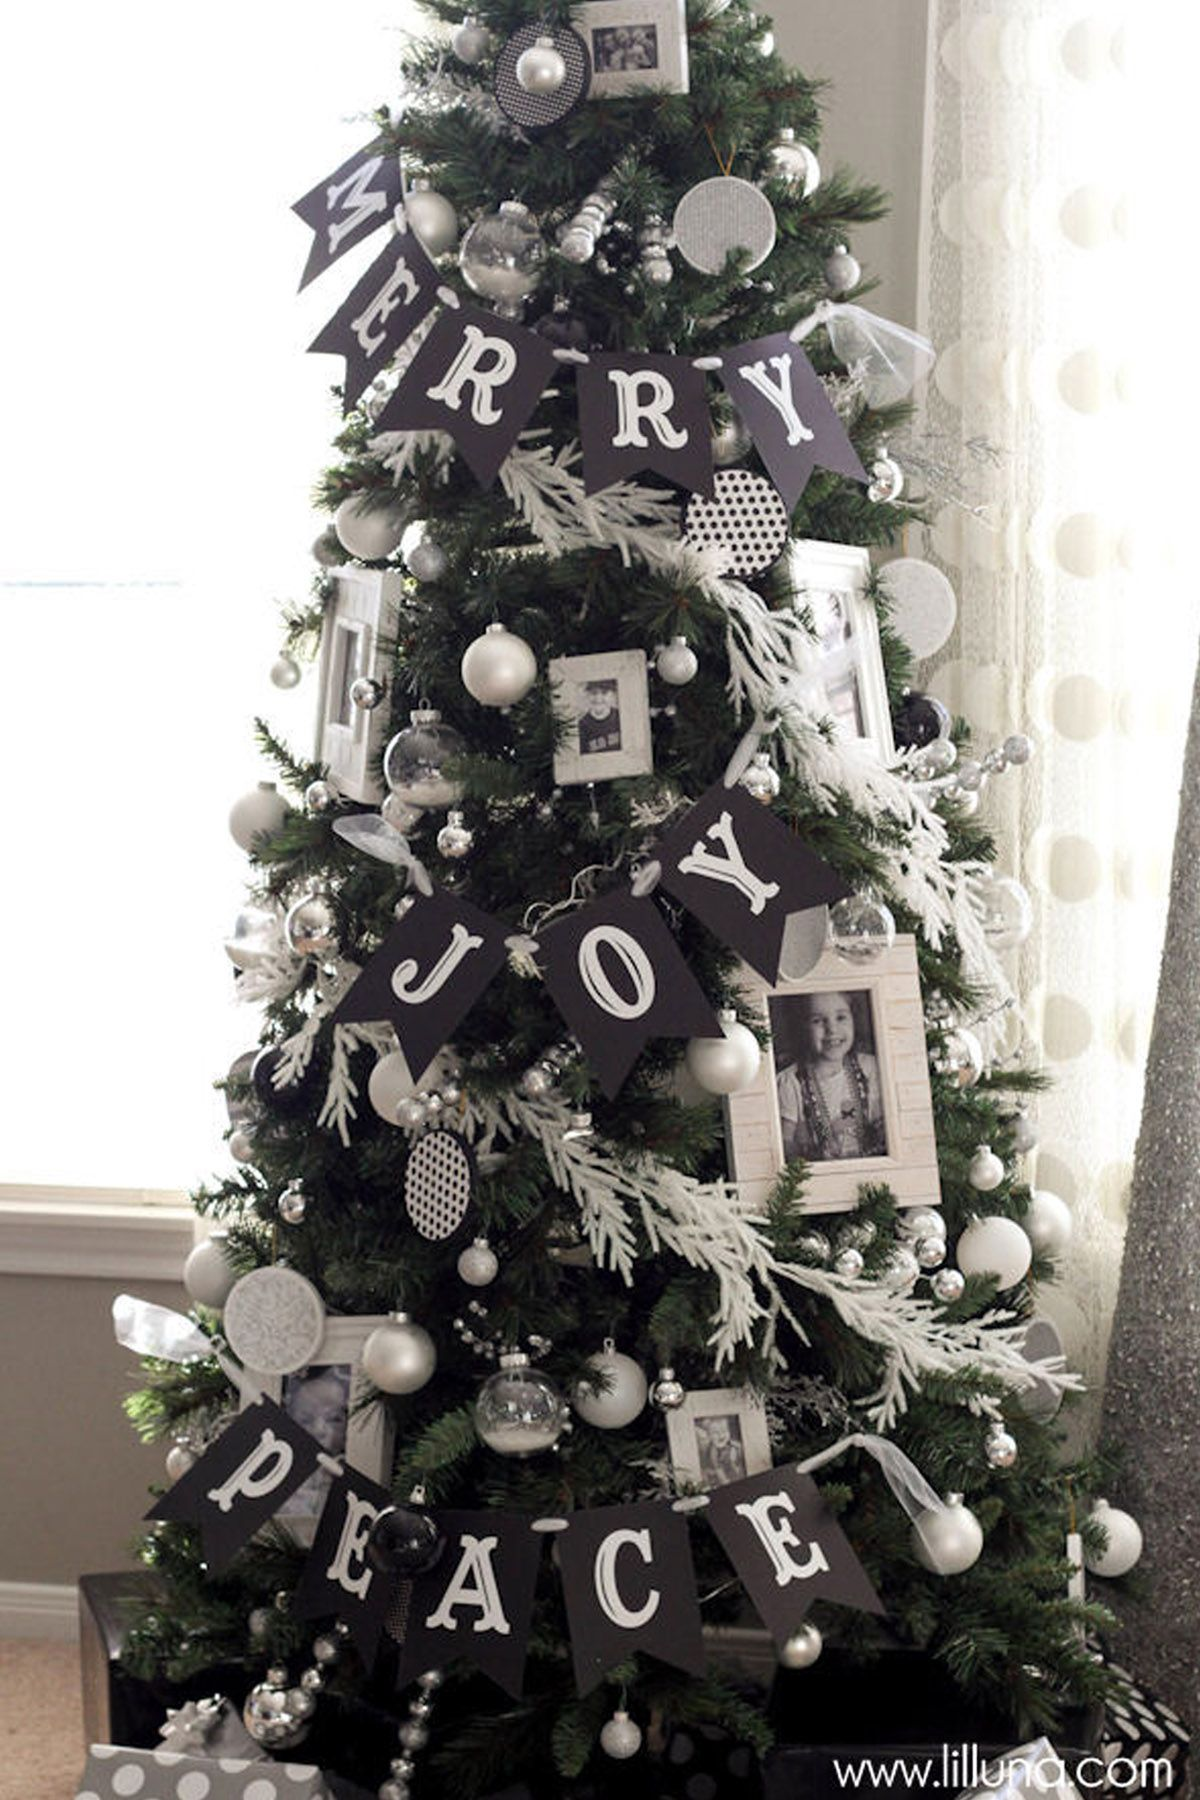 christmas tree decorations  sc 1 st  Womanu0027s Day & 25+ Unique Christmas Tree Decoration Ideas - Pictures of Decorated ...